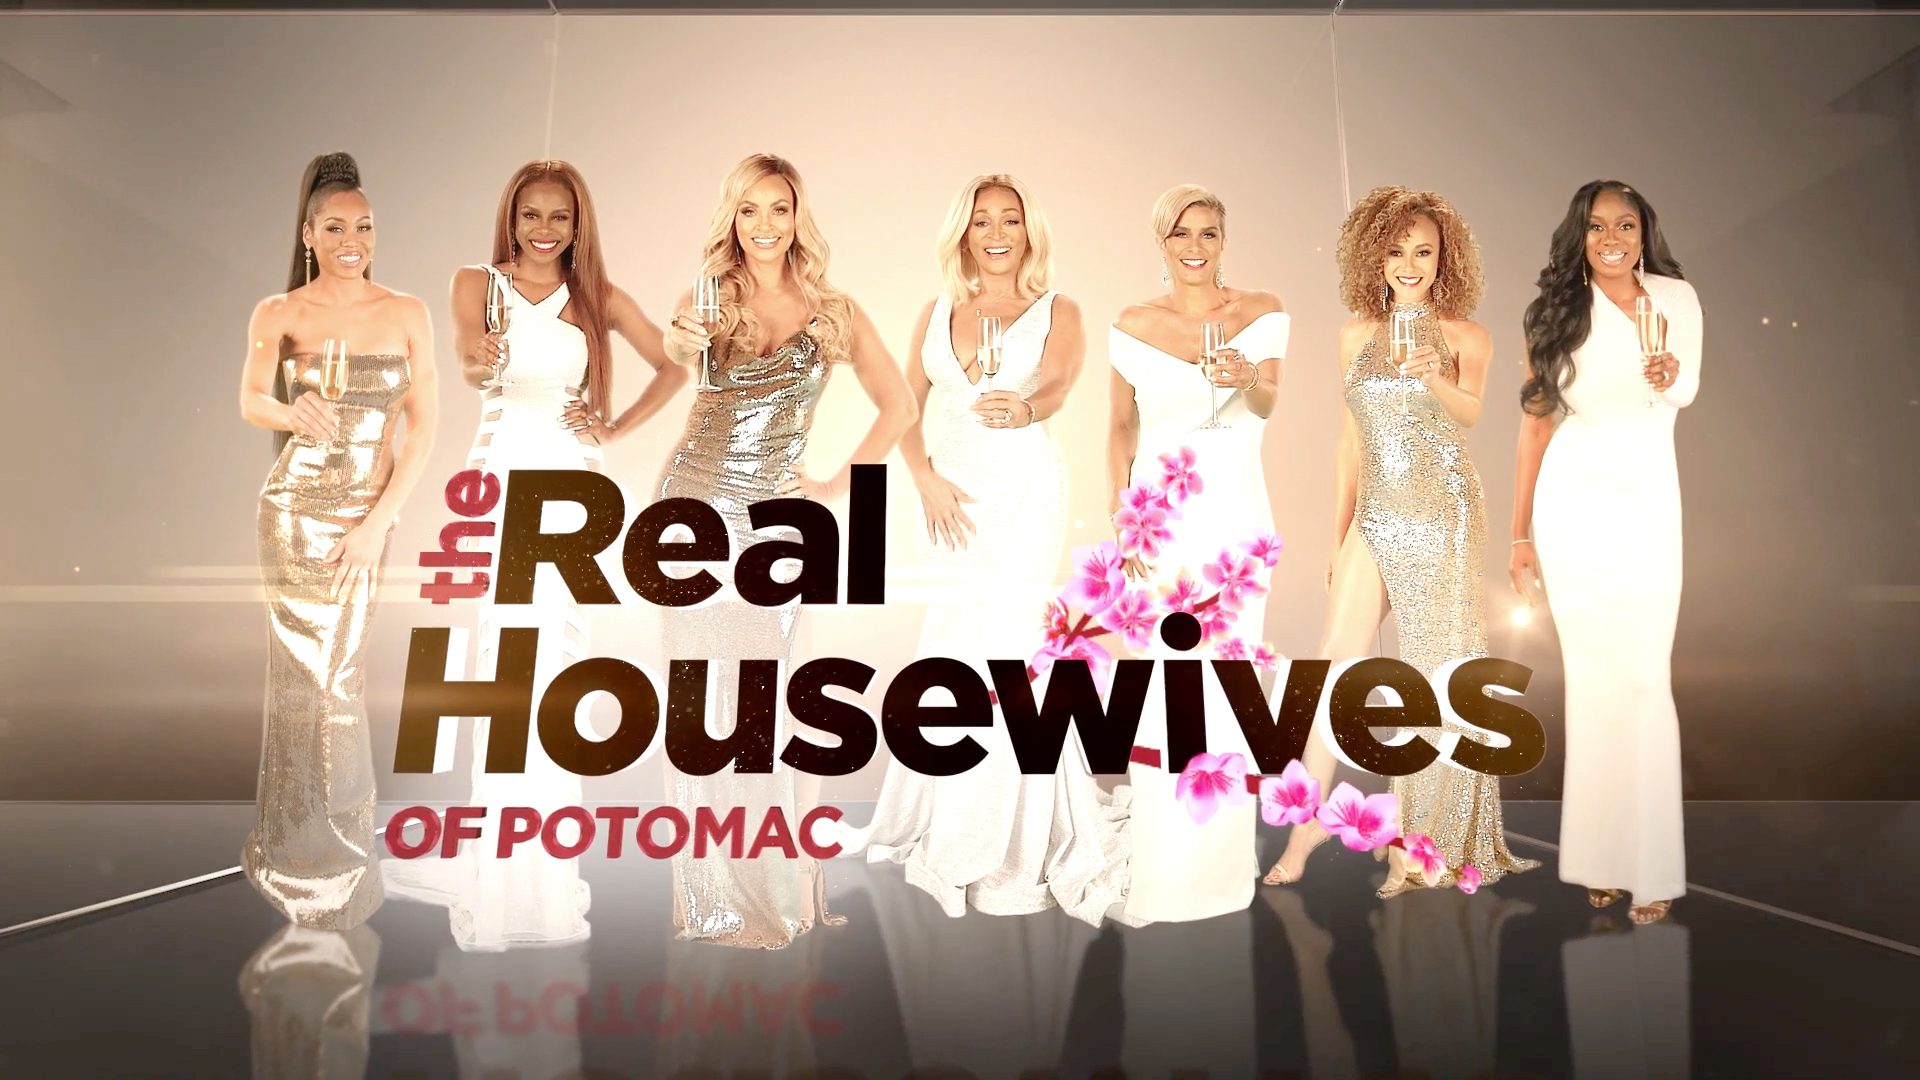 The Real Housewives of Potomac Season 5 Taglines Are Revealed!